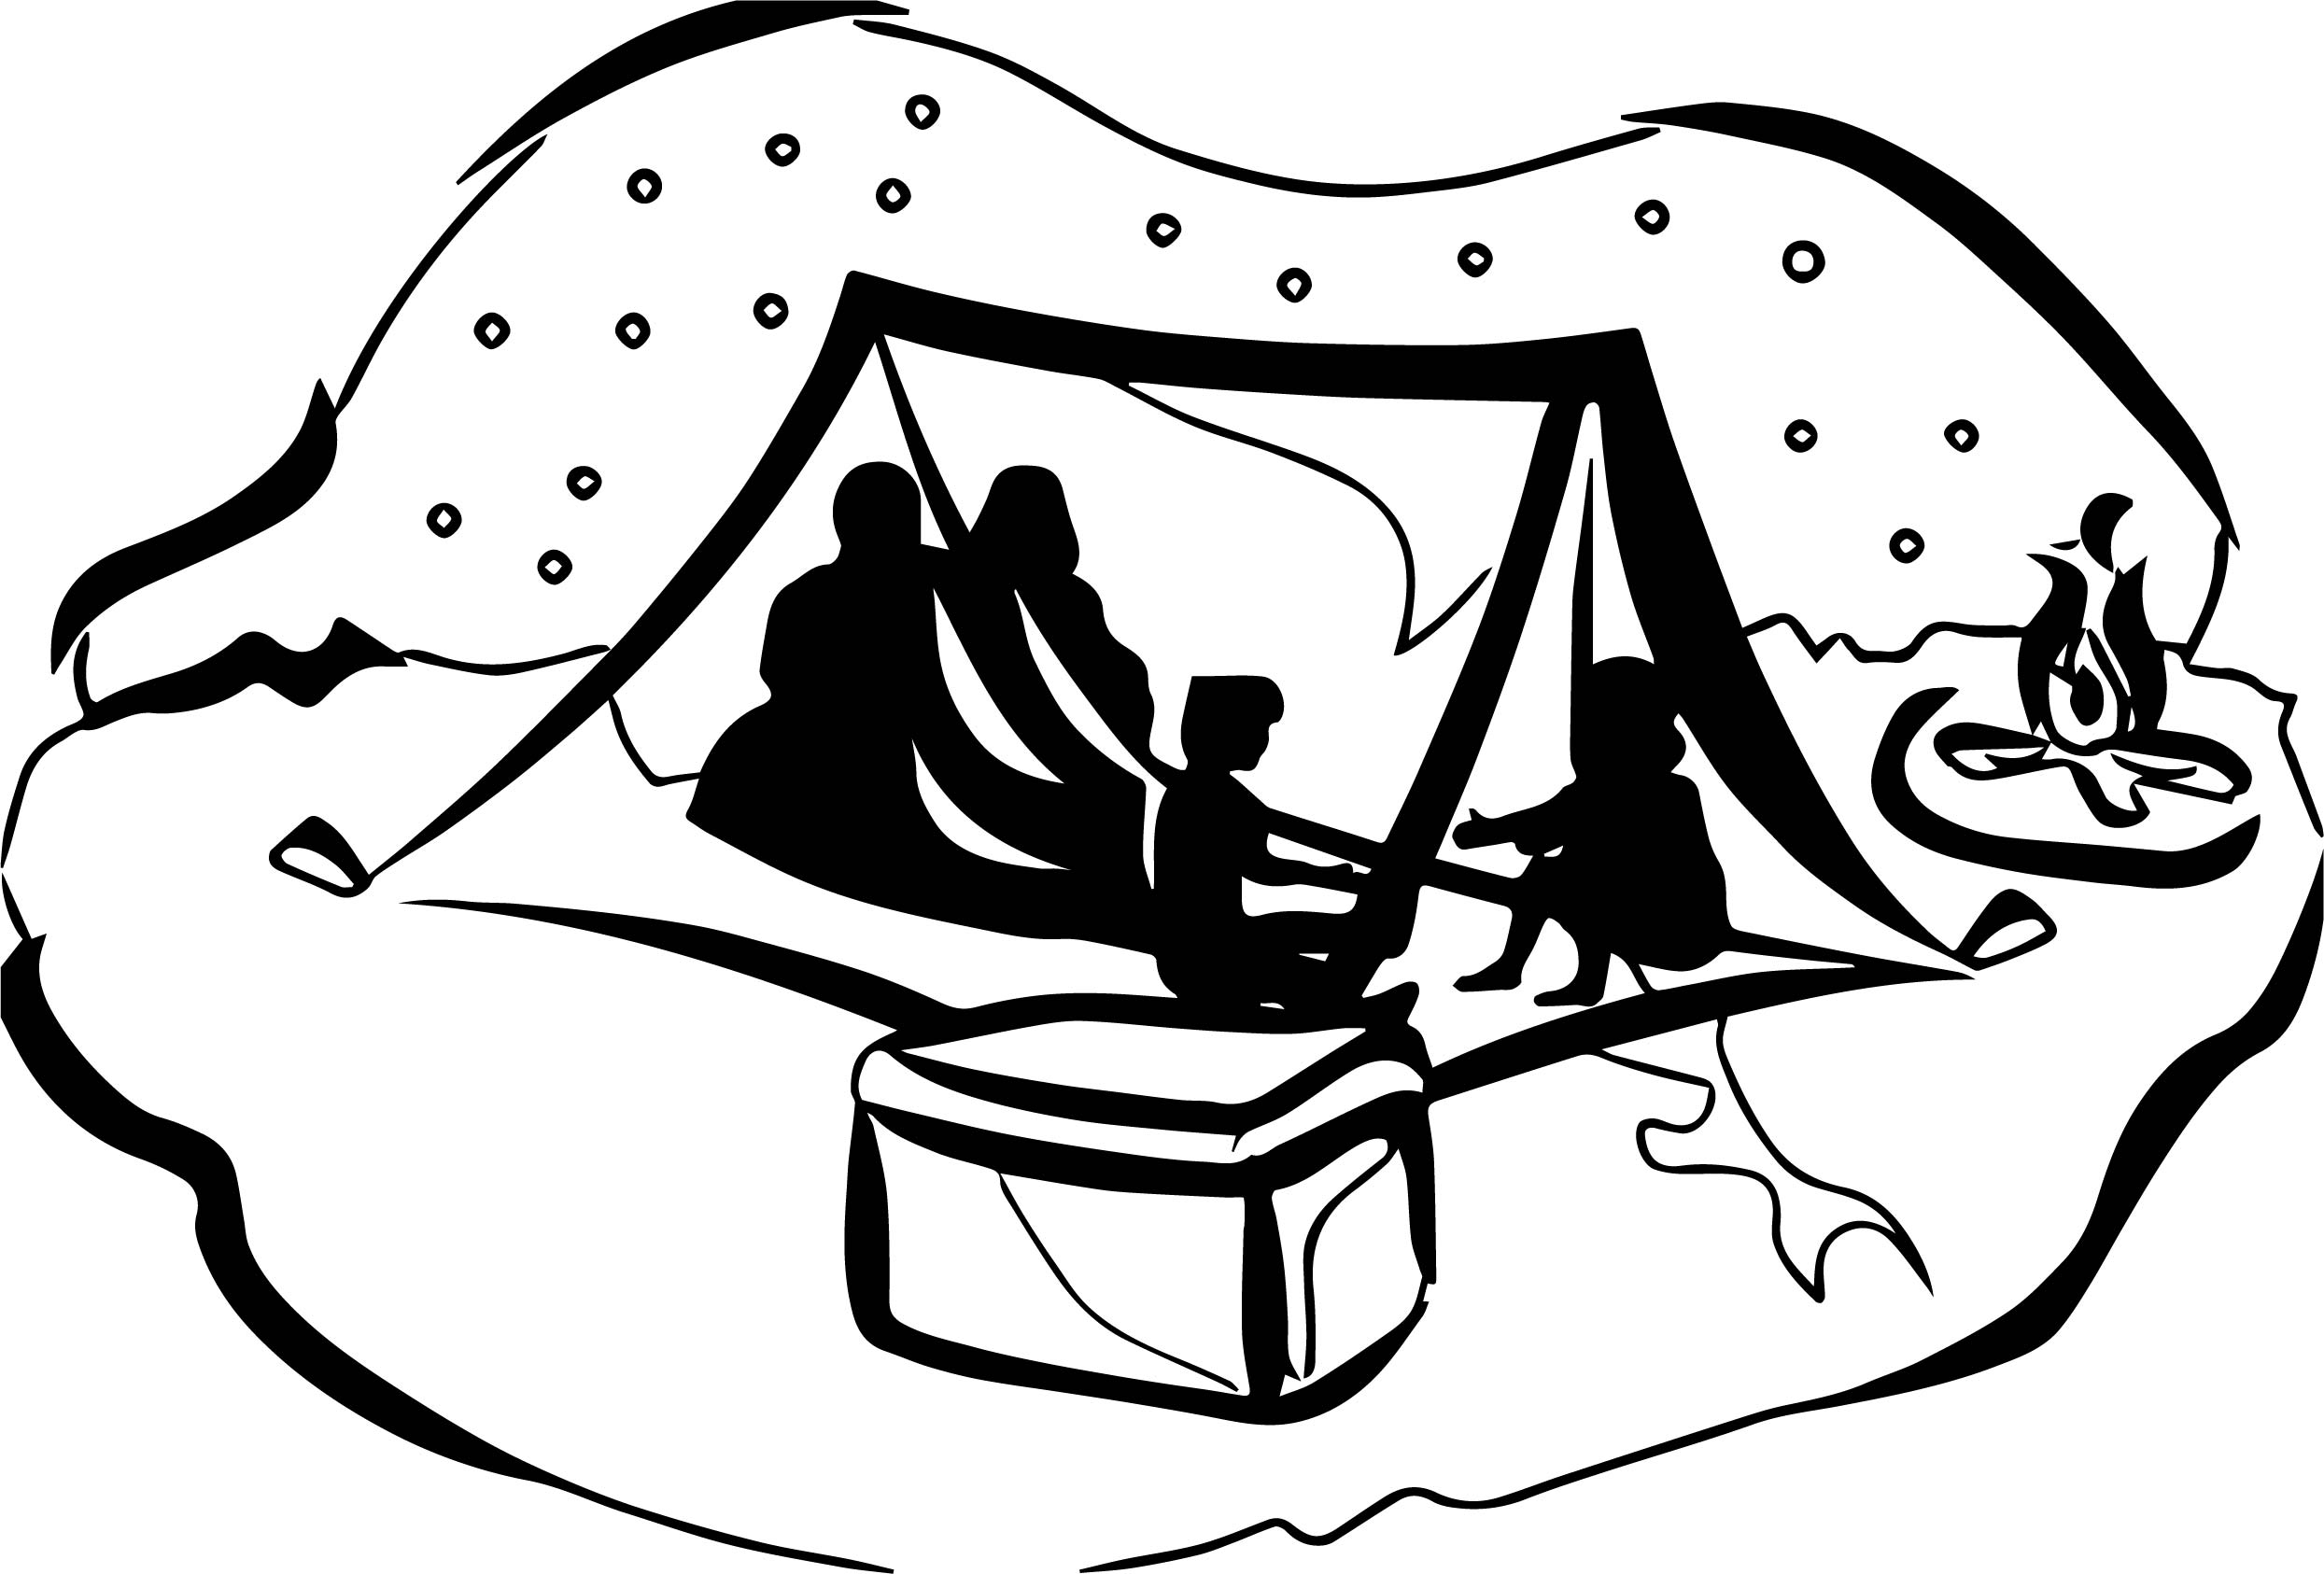 Camping Clipart Black And White